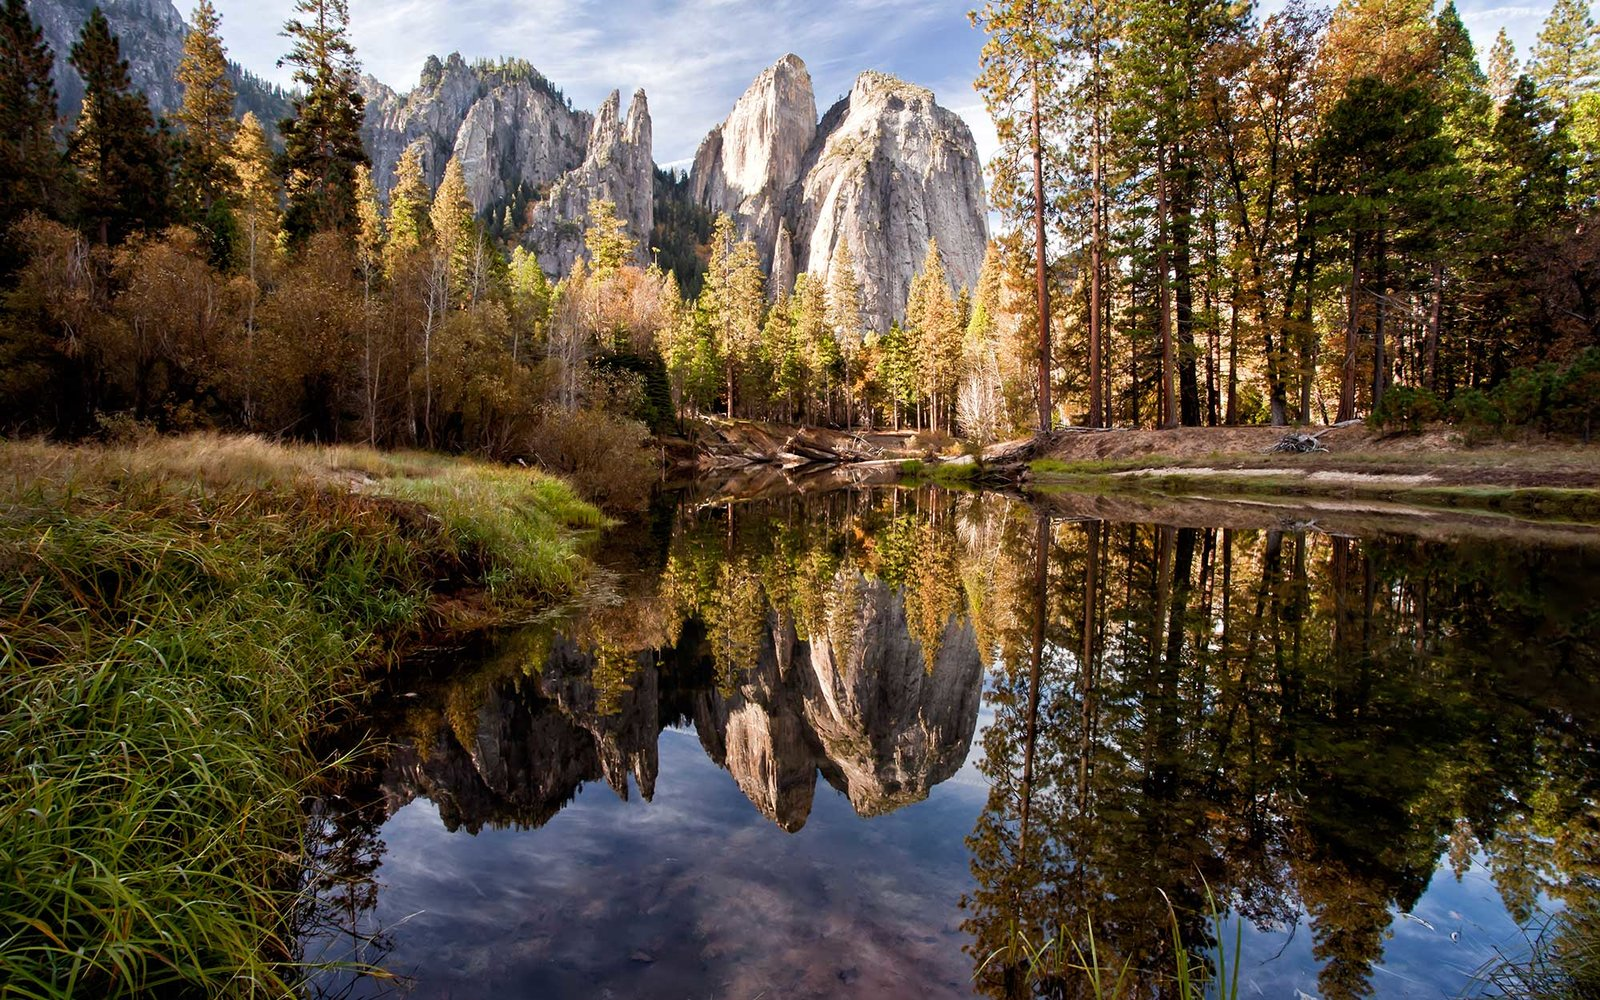 image?url=http%3A%2F%2Fcdn-image.travelandleisure.com%2Fsites%2Fdefault%2Ffiles%2Fstyles%2F1600x1000%2Fpublic%2F1463496573%2Fgrand-teton-FIFTY0516 The Best National Park in Every State Lifestyle Travel [your]NEWS